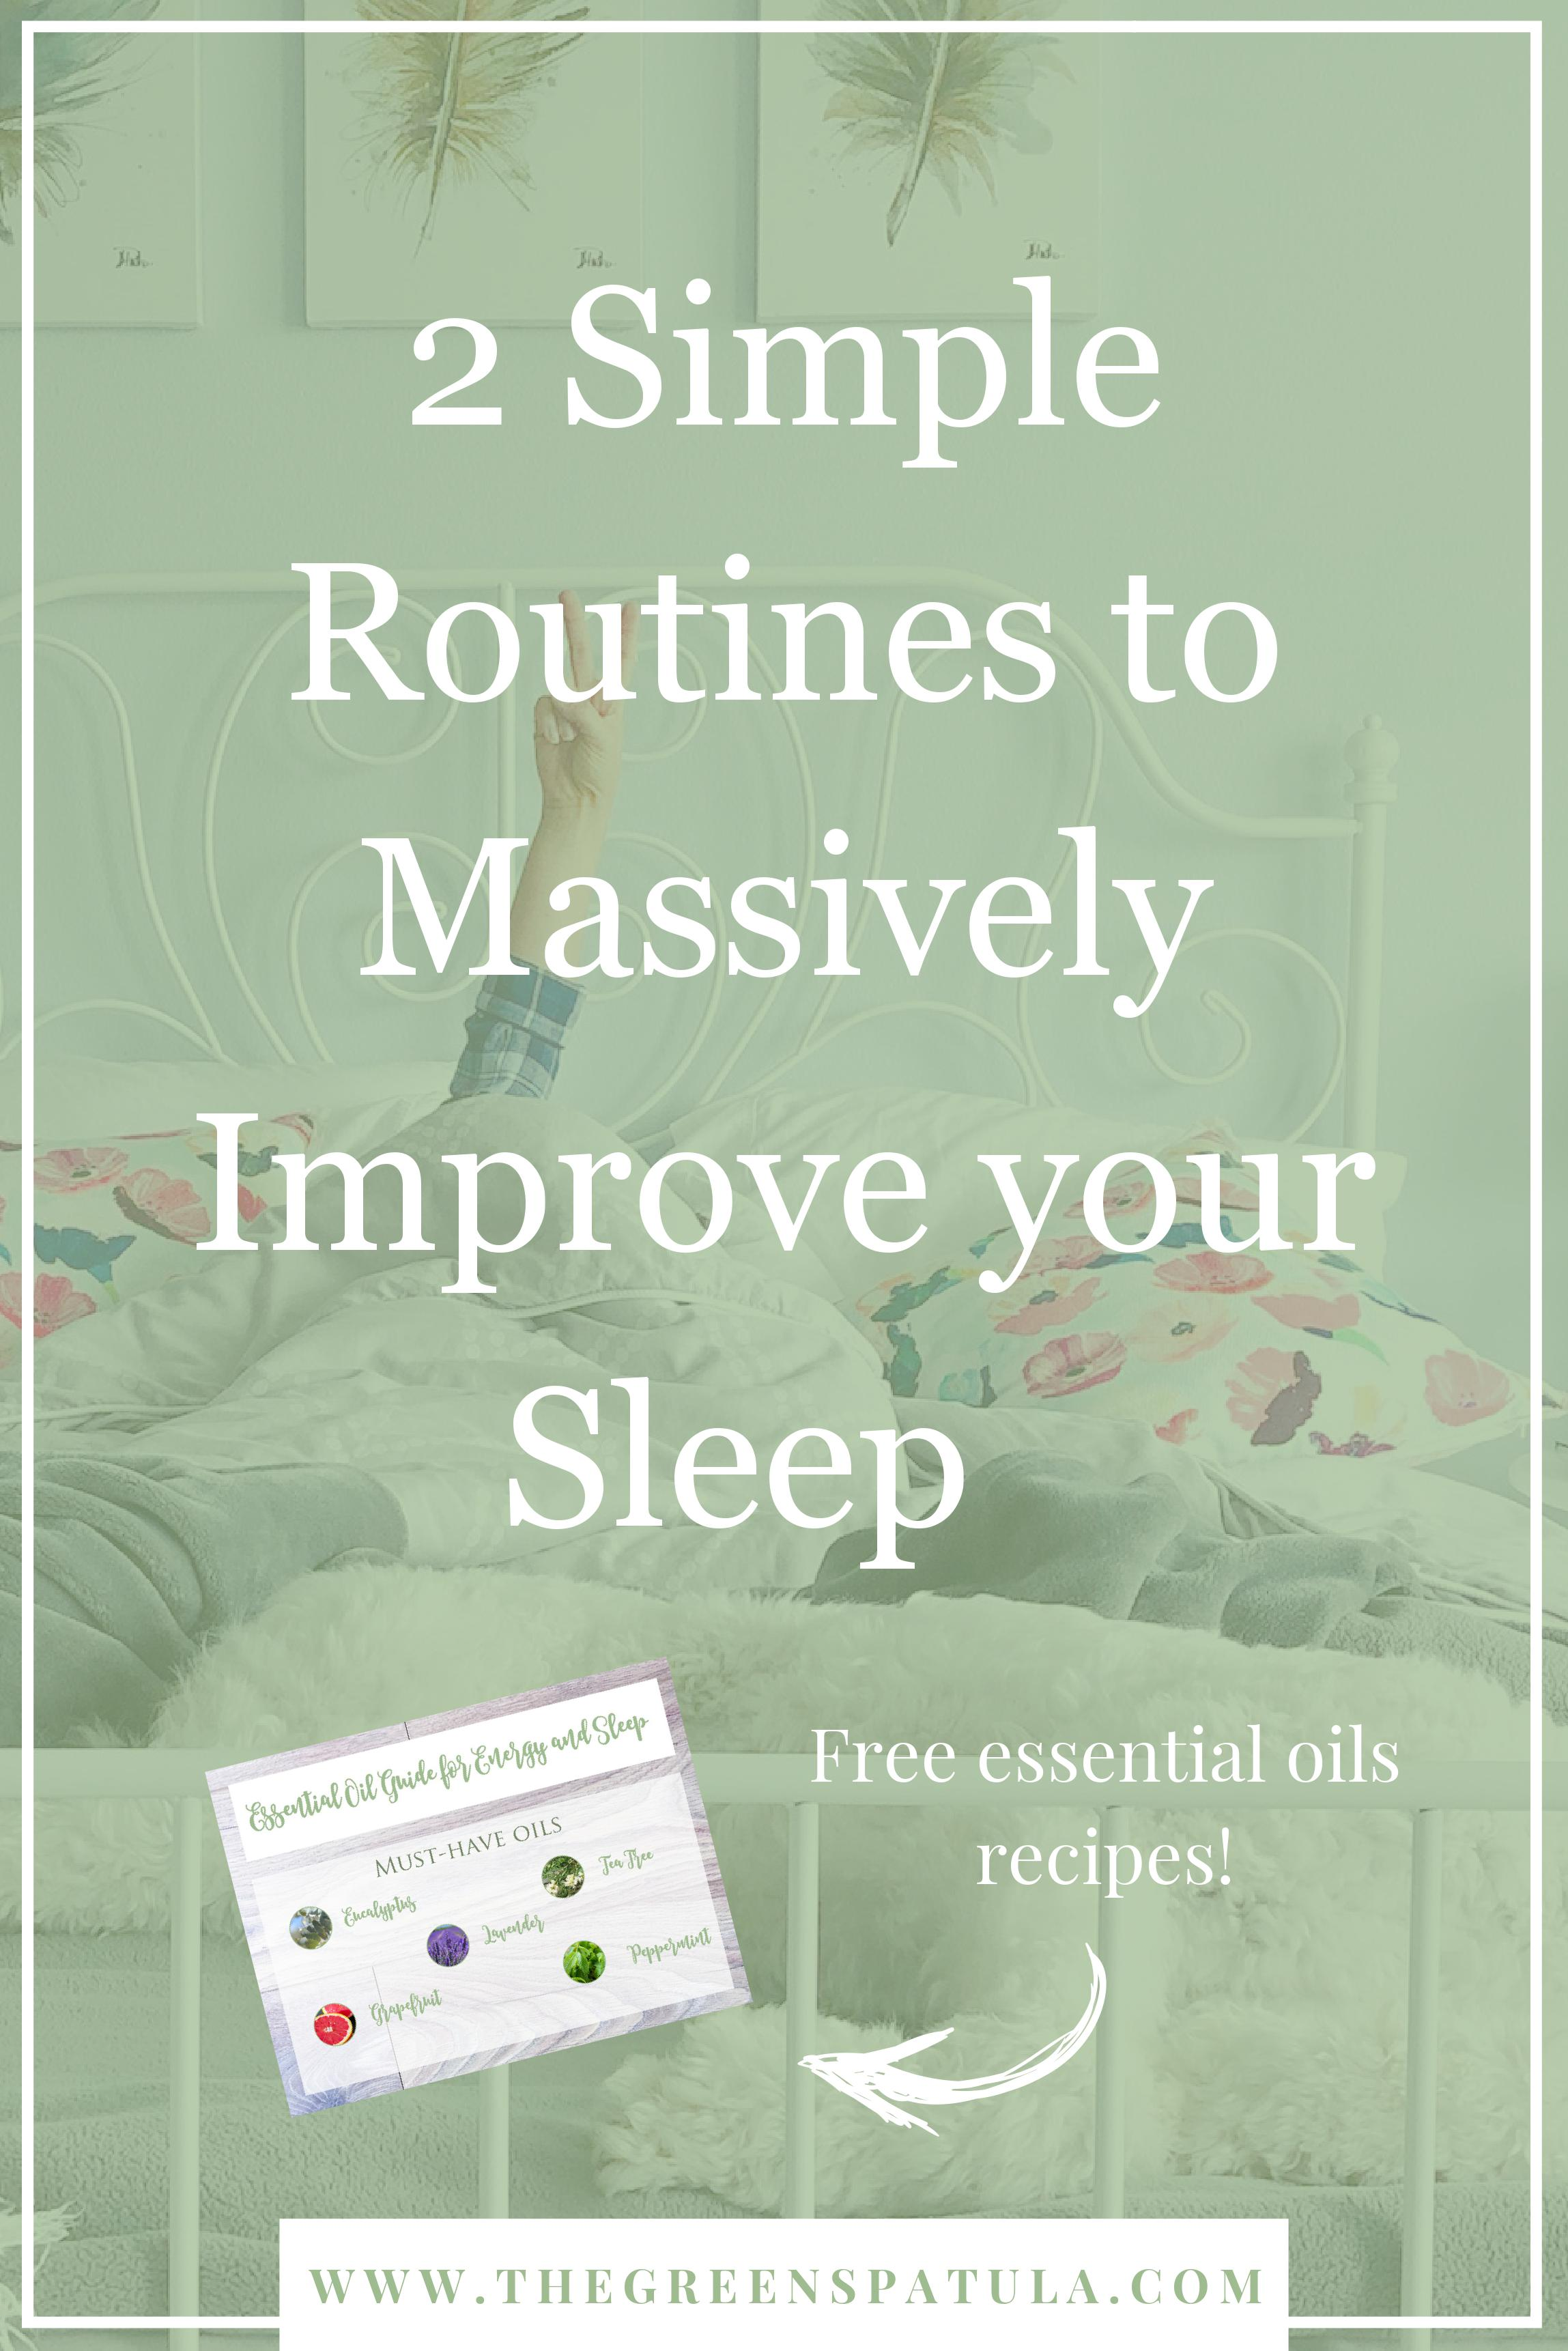 2 simple routines to massively improve your sleep - Create relaxing evening and morning routines so you can fall asleep quicker and wake up refreshed (even if you're not a morning person). Discover why professional athletes and celebrities like Tom Brady, Beyonce, and Jennifer Lopez prioritize sleep as much as training or rehearsing! Free essential oil download so you can drift off to sleep on a cloud of relaxation. #essentailoils #yl #sleep #bettersleep #plantbased #holistic #holistichealth #stressless #weightloss